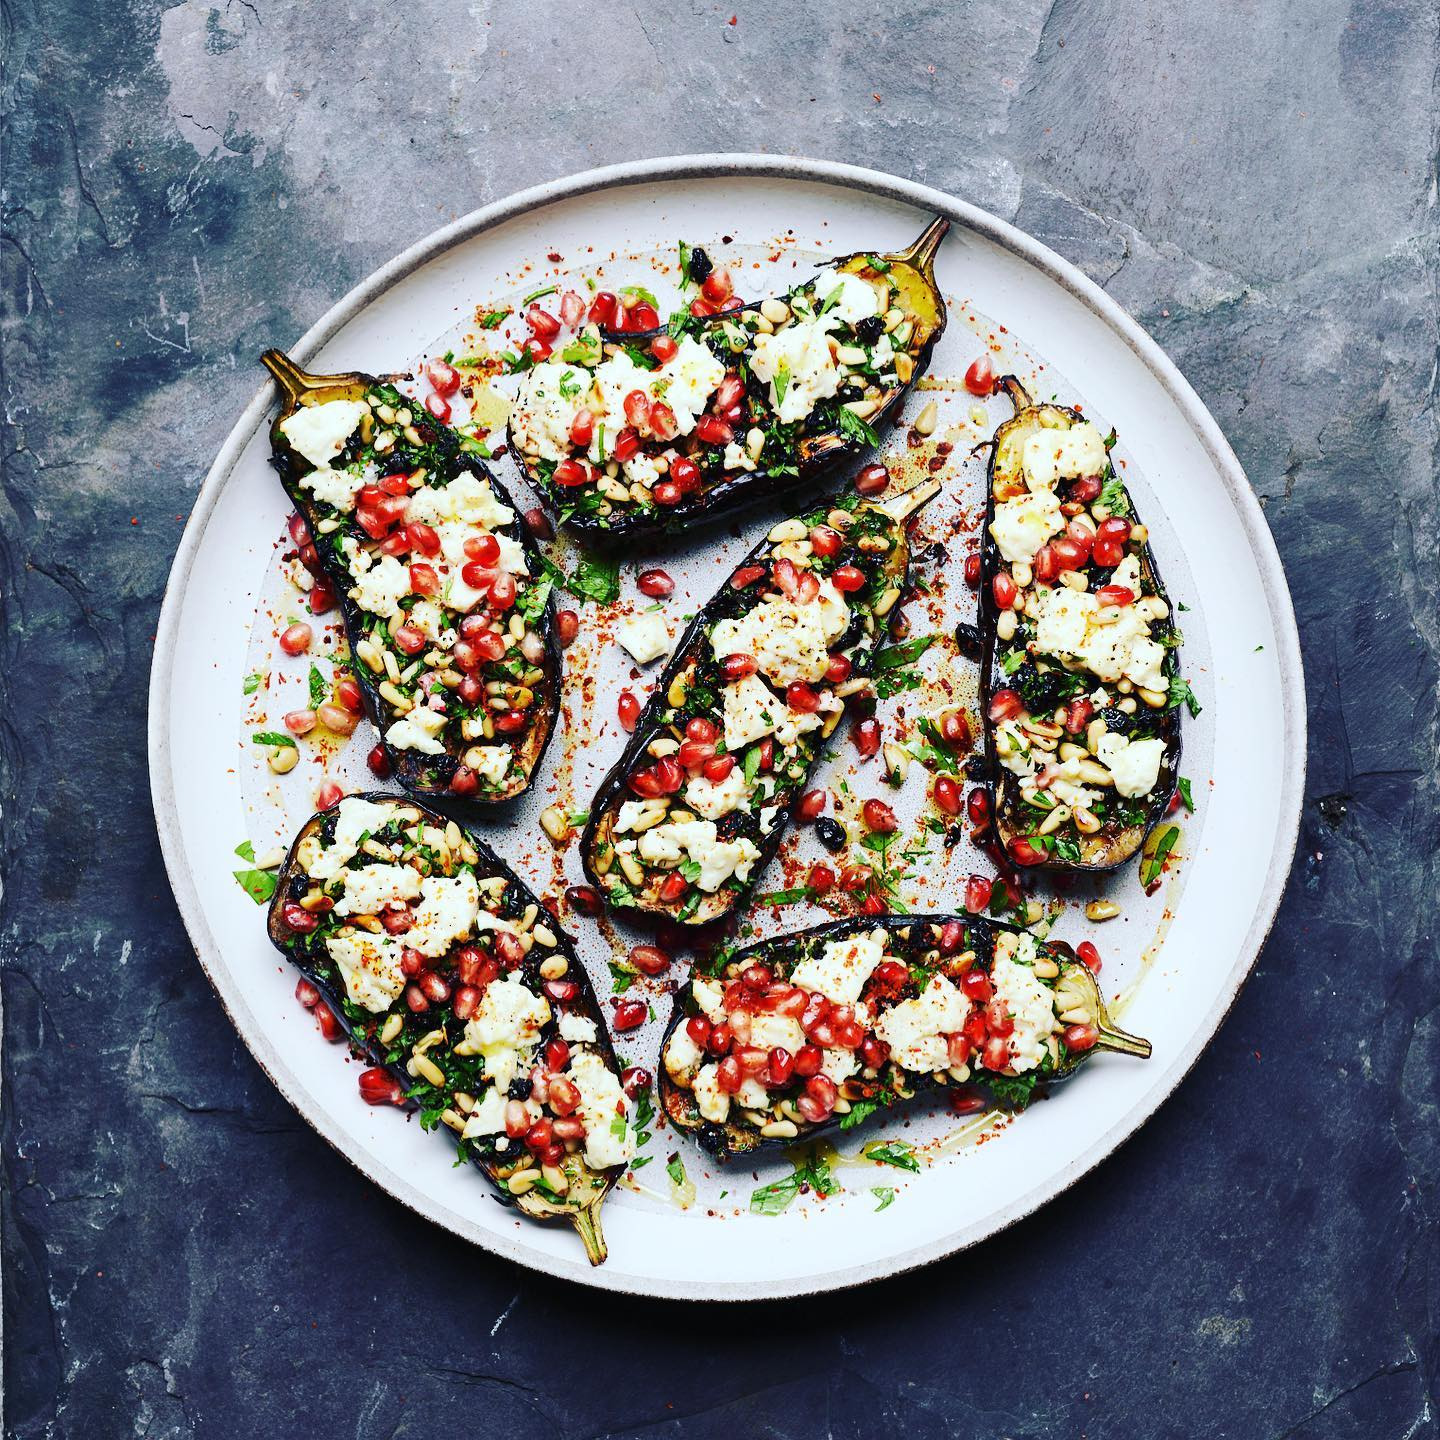 Today is publication day for Foolproof BBQ which I shot for the incredibly talented @genevieveeats . Published by @quadrillebooks , commissioned by @sarah10016 and assisted by @ubuntu_food . Congratulations all 🥳️.Grilled Aubergines ...#foolproofbbq #genevievetaylor #quadrillebooks #foodphotography #bbq #bbqfood #cookingonfire